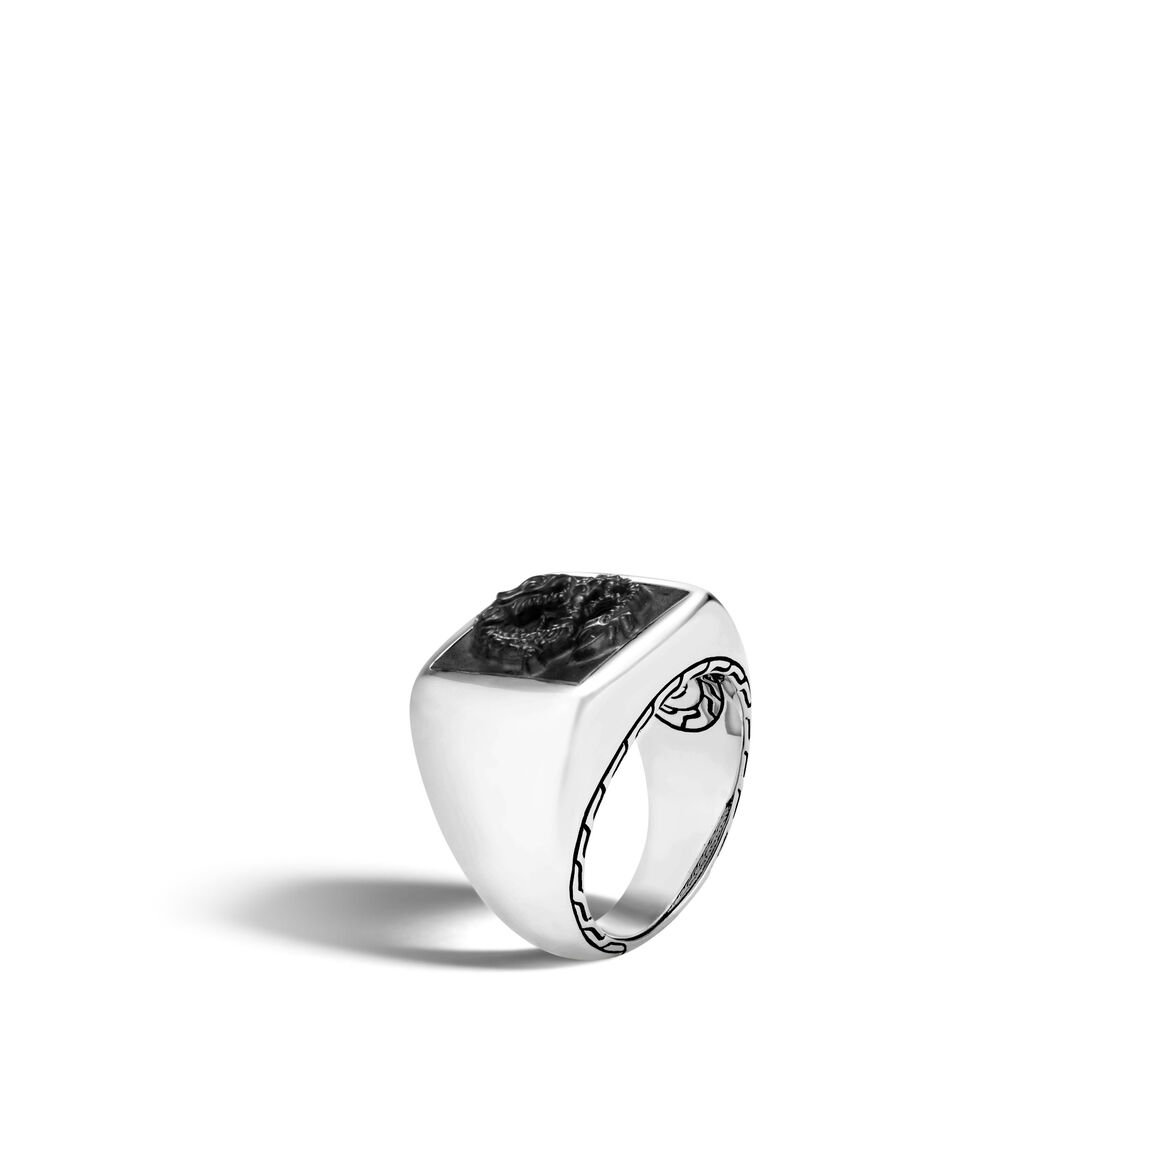 Legends Naga Signet Ring in Silver with Gemstone